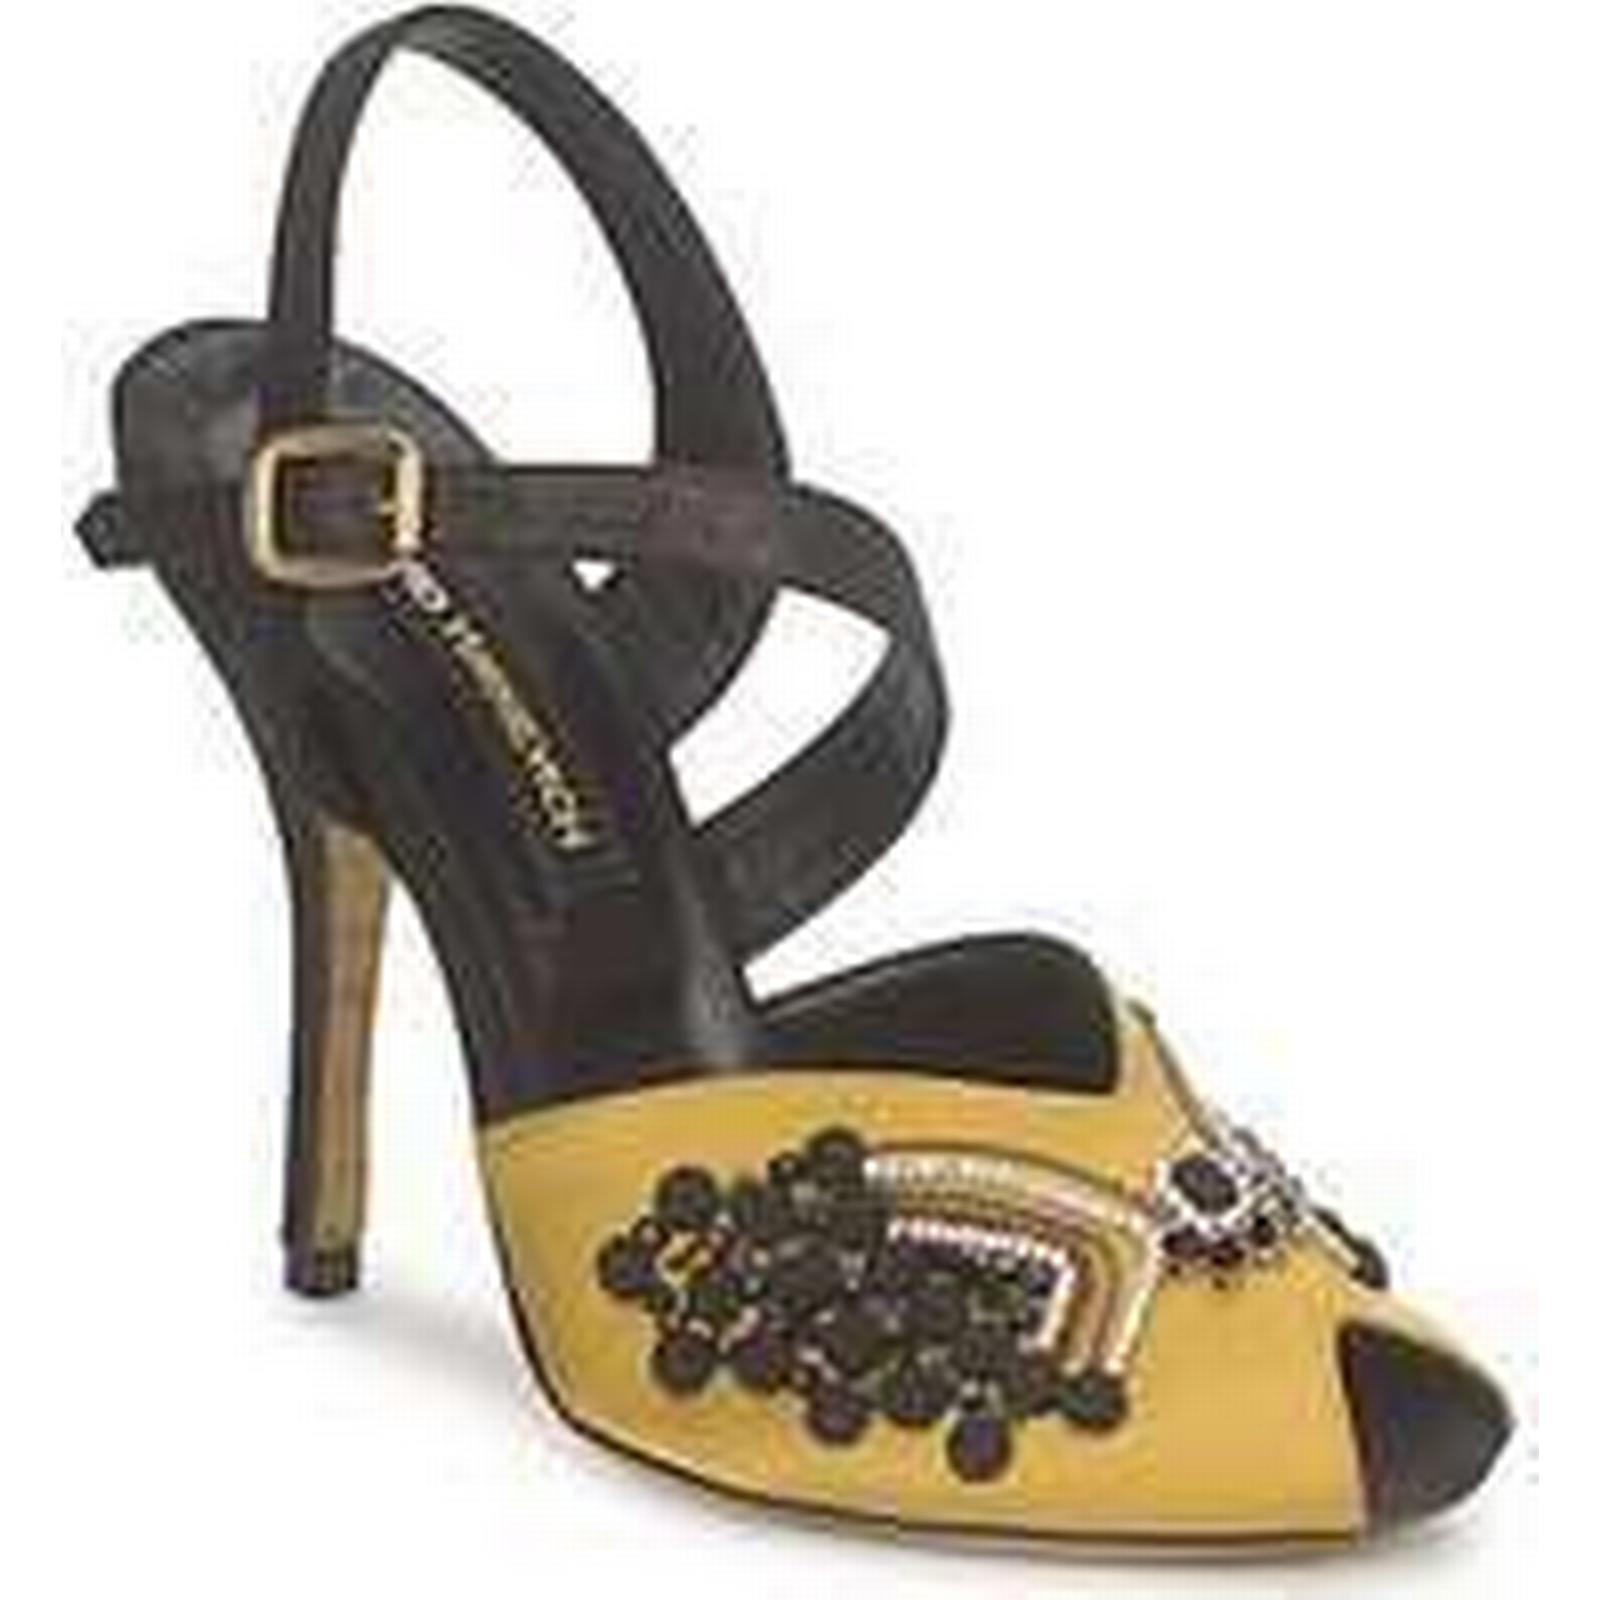 Spartoo.co.uk Gaspard in Yurkievich D12-VAR15 women's Sandals in Gaspard Yellow 08a781